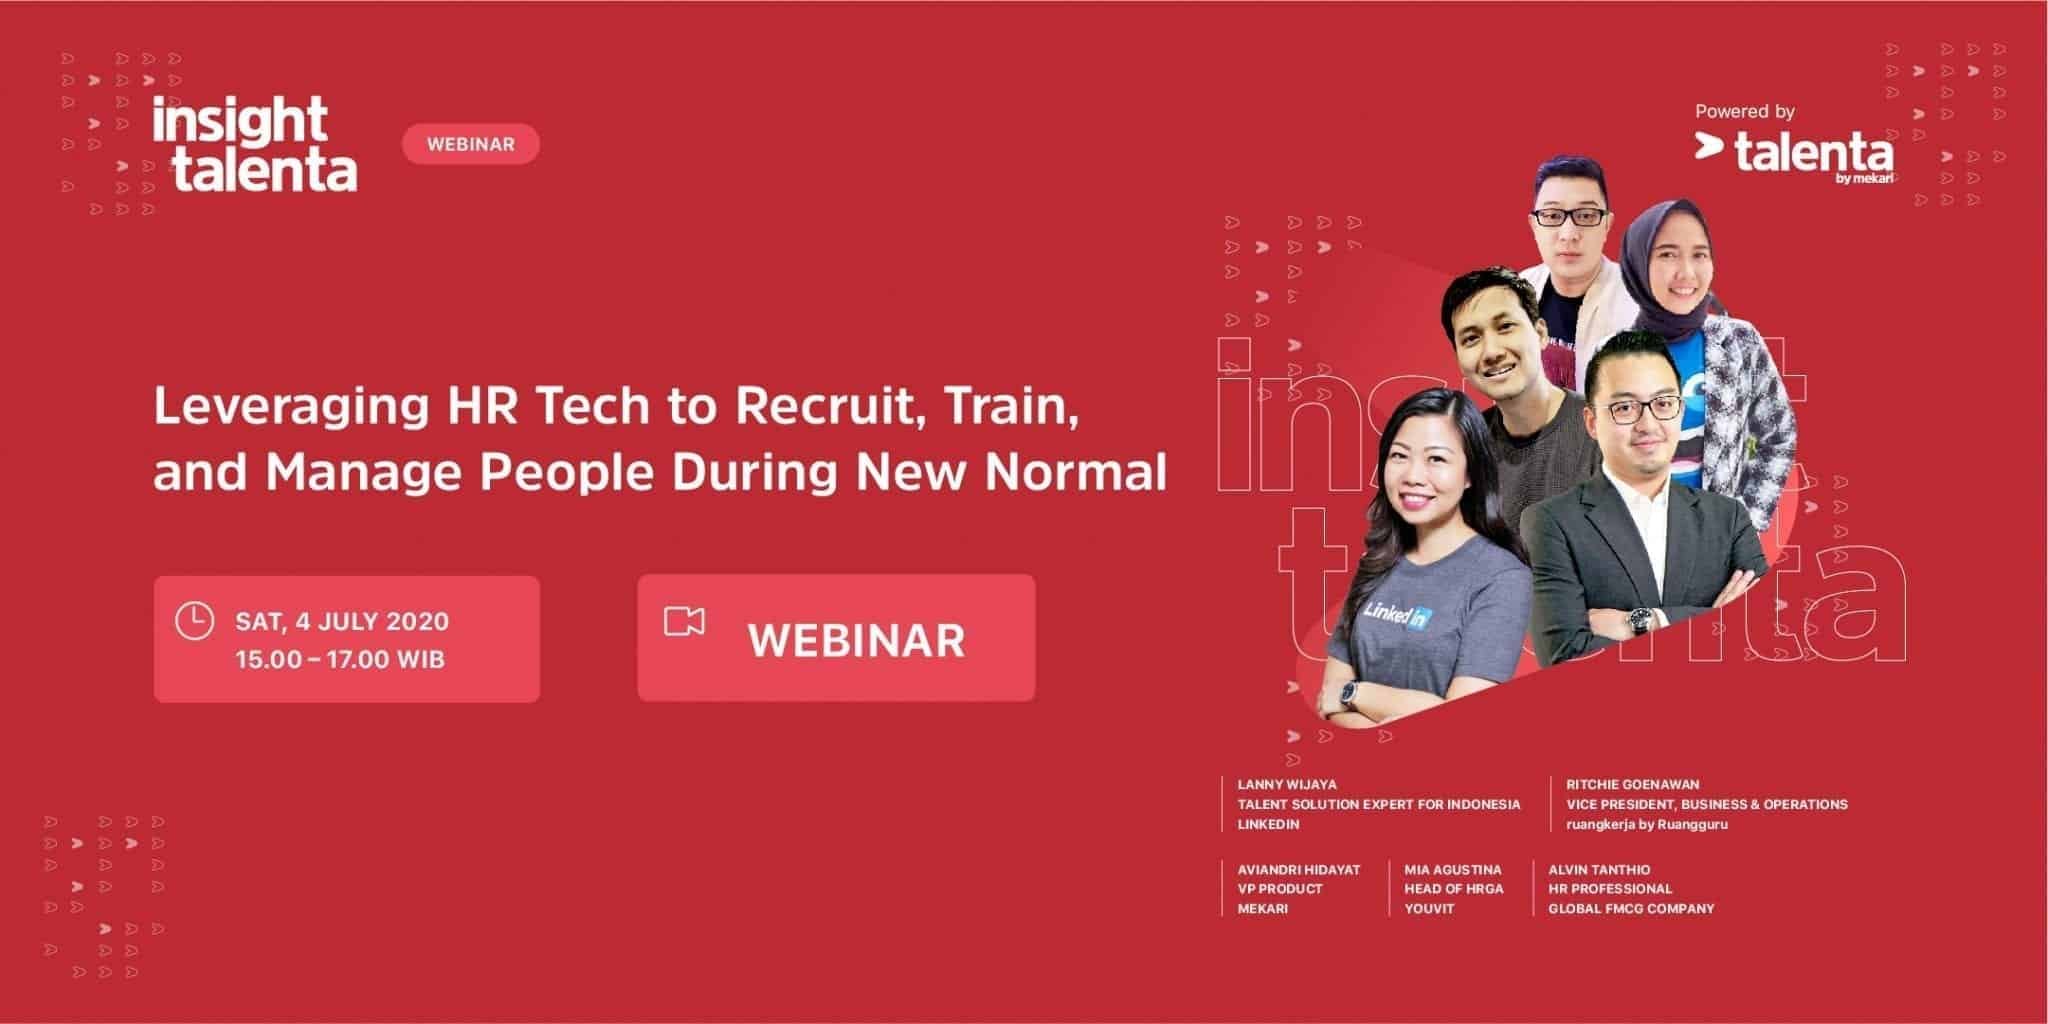 Insight Talenta Leveraging HR Tech to Recruit, Train and Manage People During New Normal